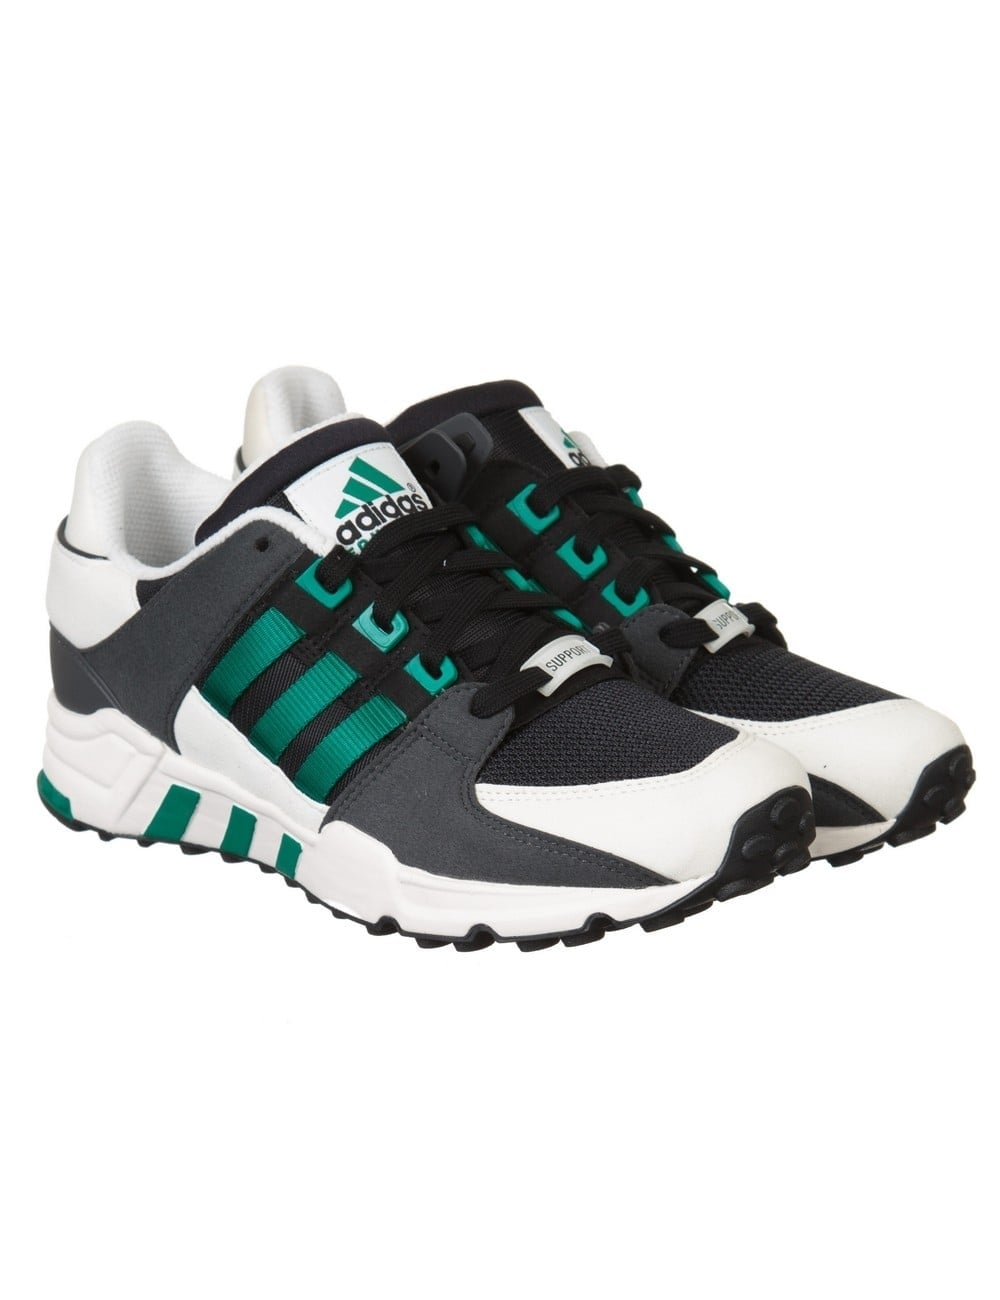 carga Proponer tomar  Adidas Originals Equipment Running Support Shoes - Black/Sub Green -  Trainers from Fat Buddha Store UK